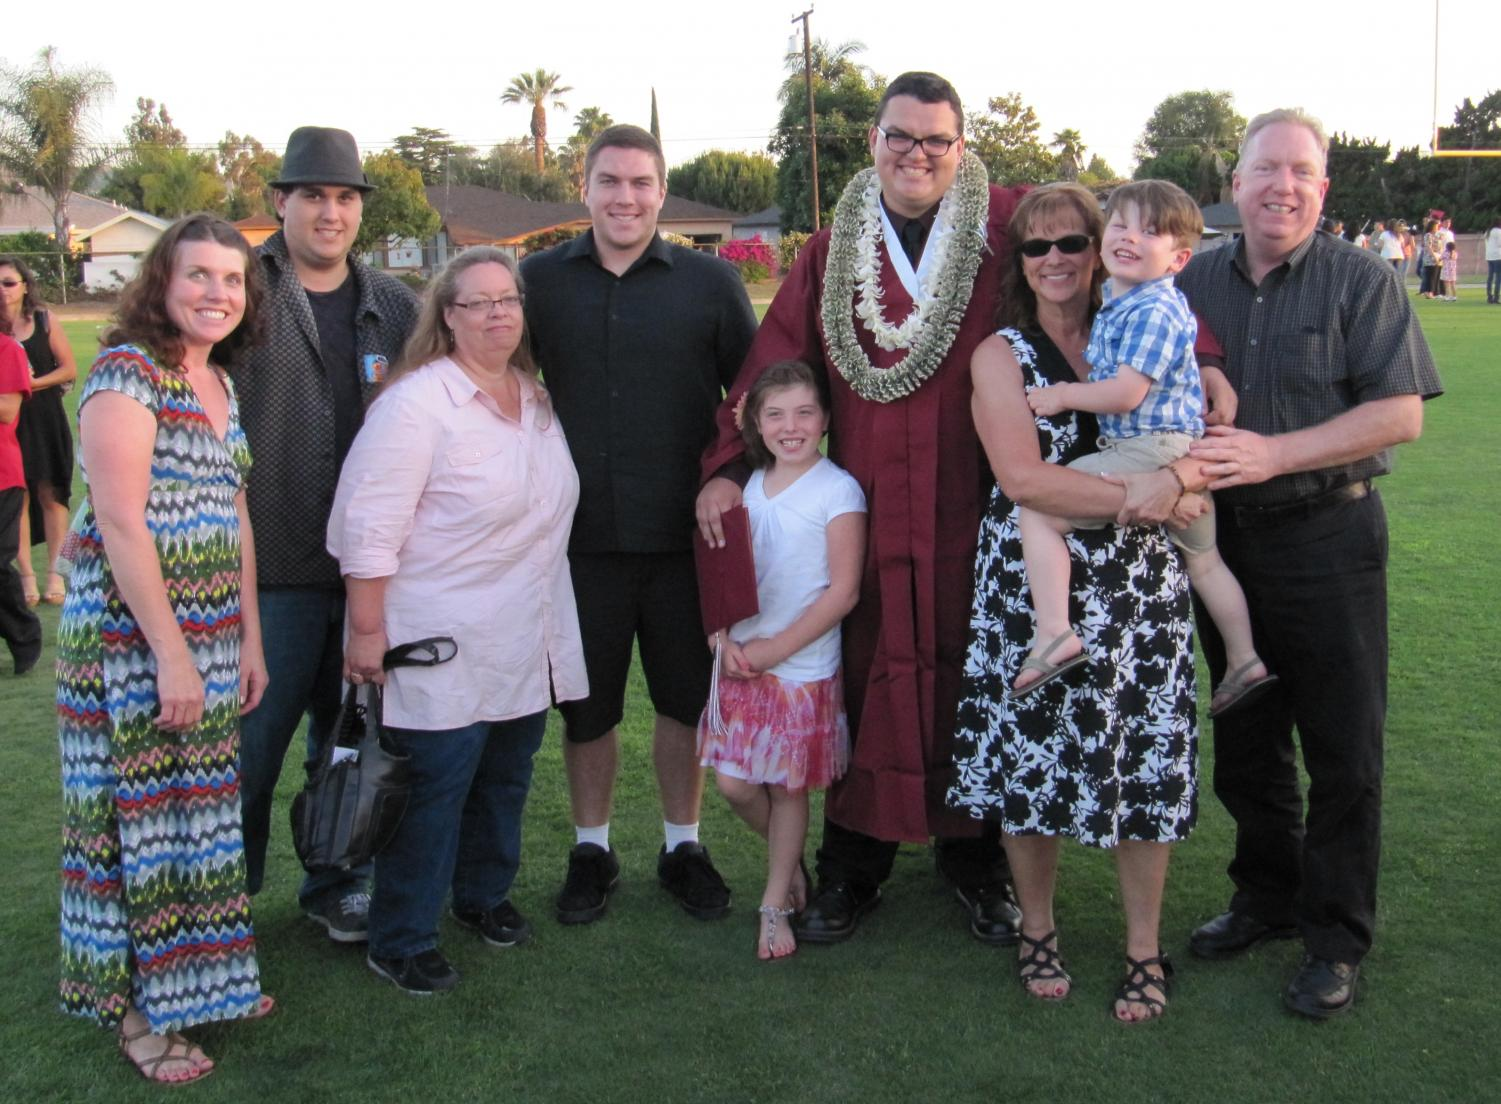 My+family+with+my+aunt+Cheri%2C+far+left%2C+aunt+Sandy%2C+third+from+left%2C+and+maternal+cousins+at+my+high+school+graduation.+My+aunts+and+cousins+were+some+of+the+only+few+people+invited+to+my+mom%27s+private+funeral.%0A